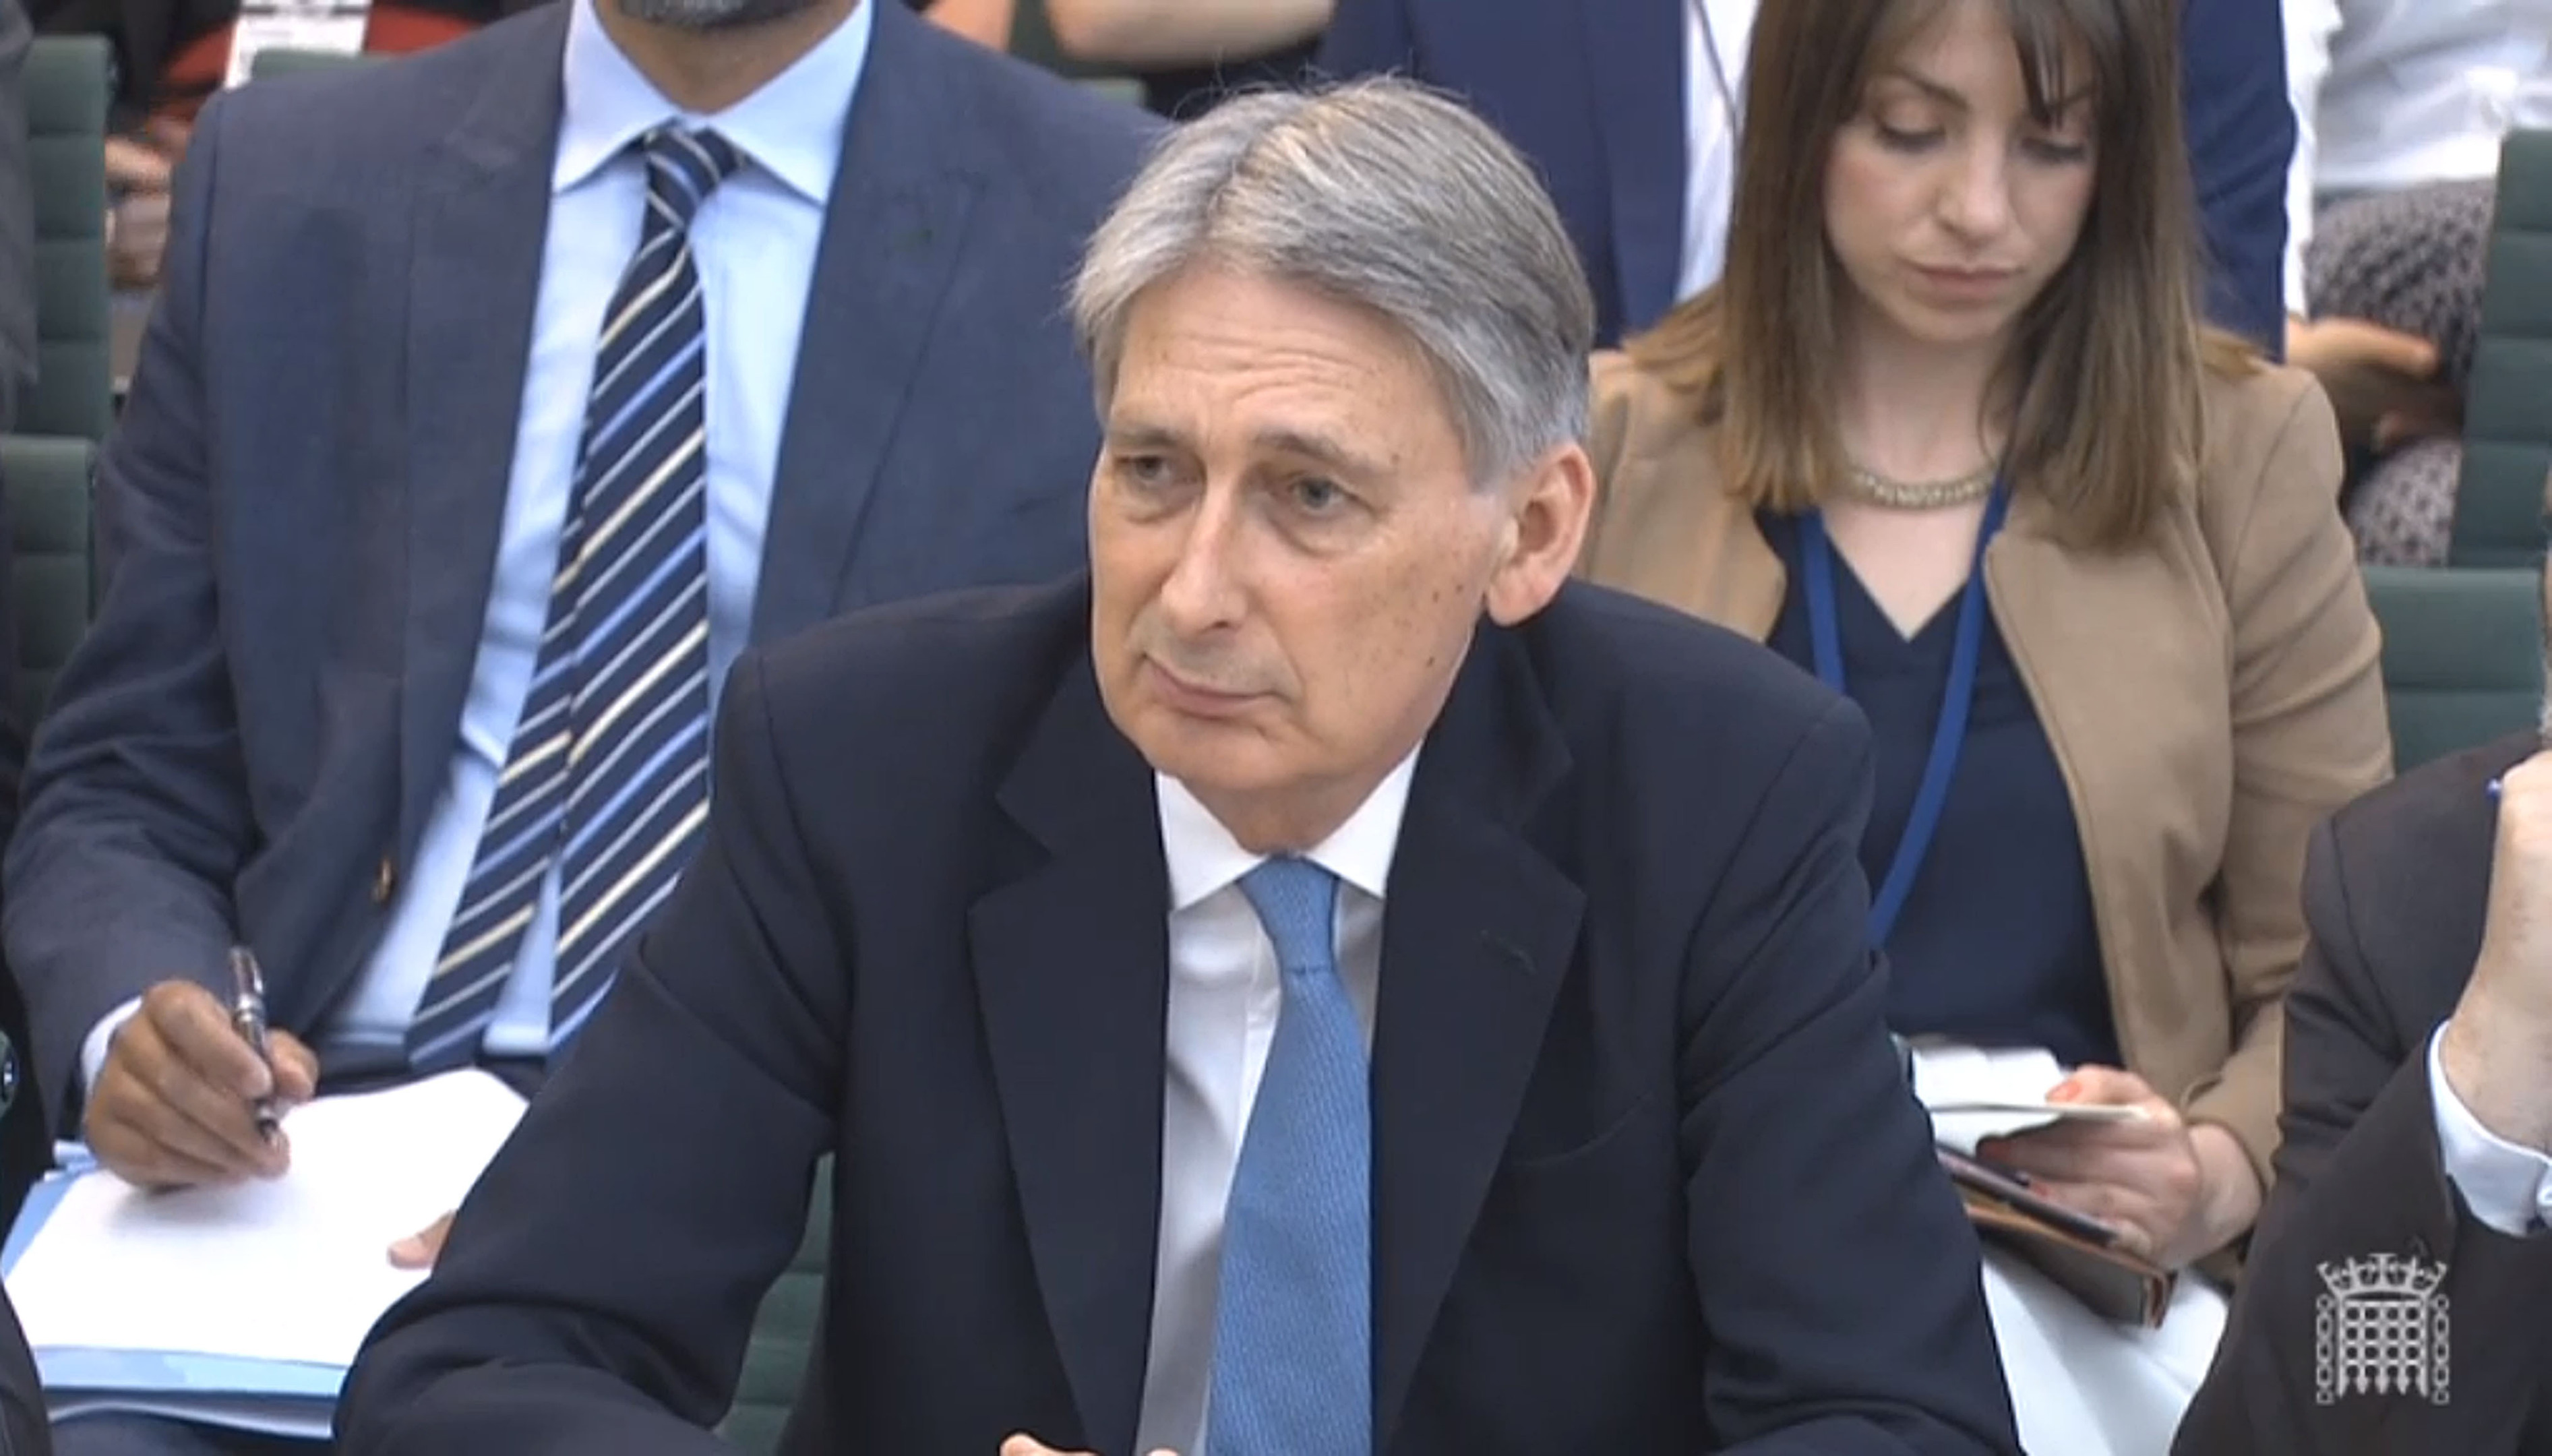 Foreign Secretary Philip Hammond gives evidence to the Foreign Affairs Committee.